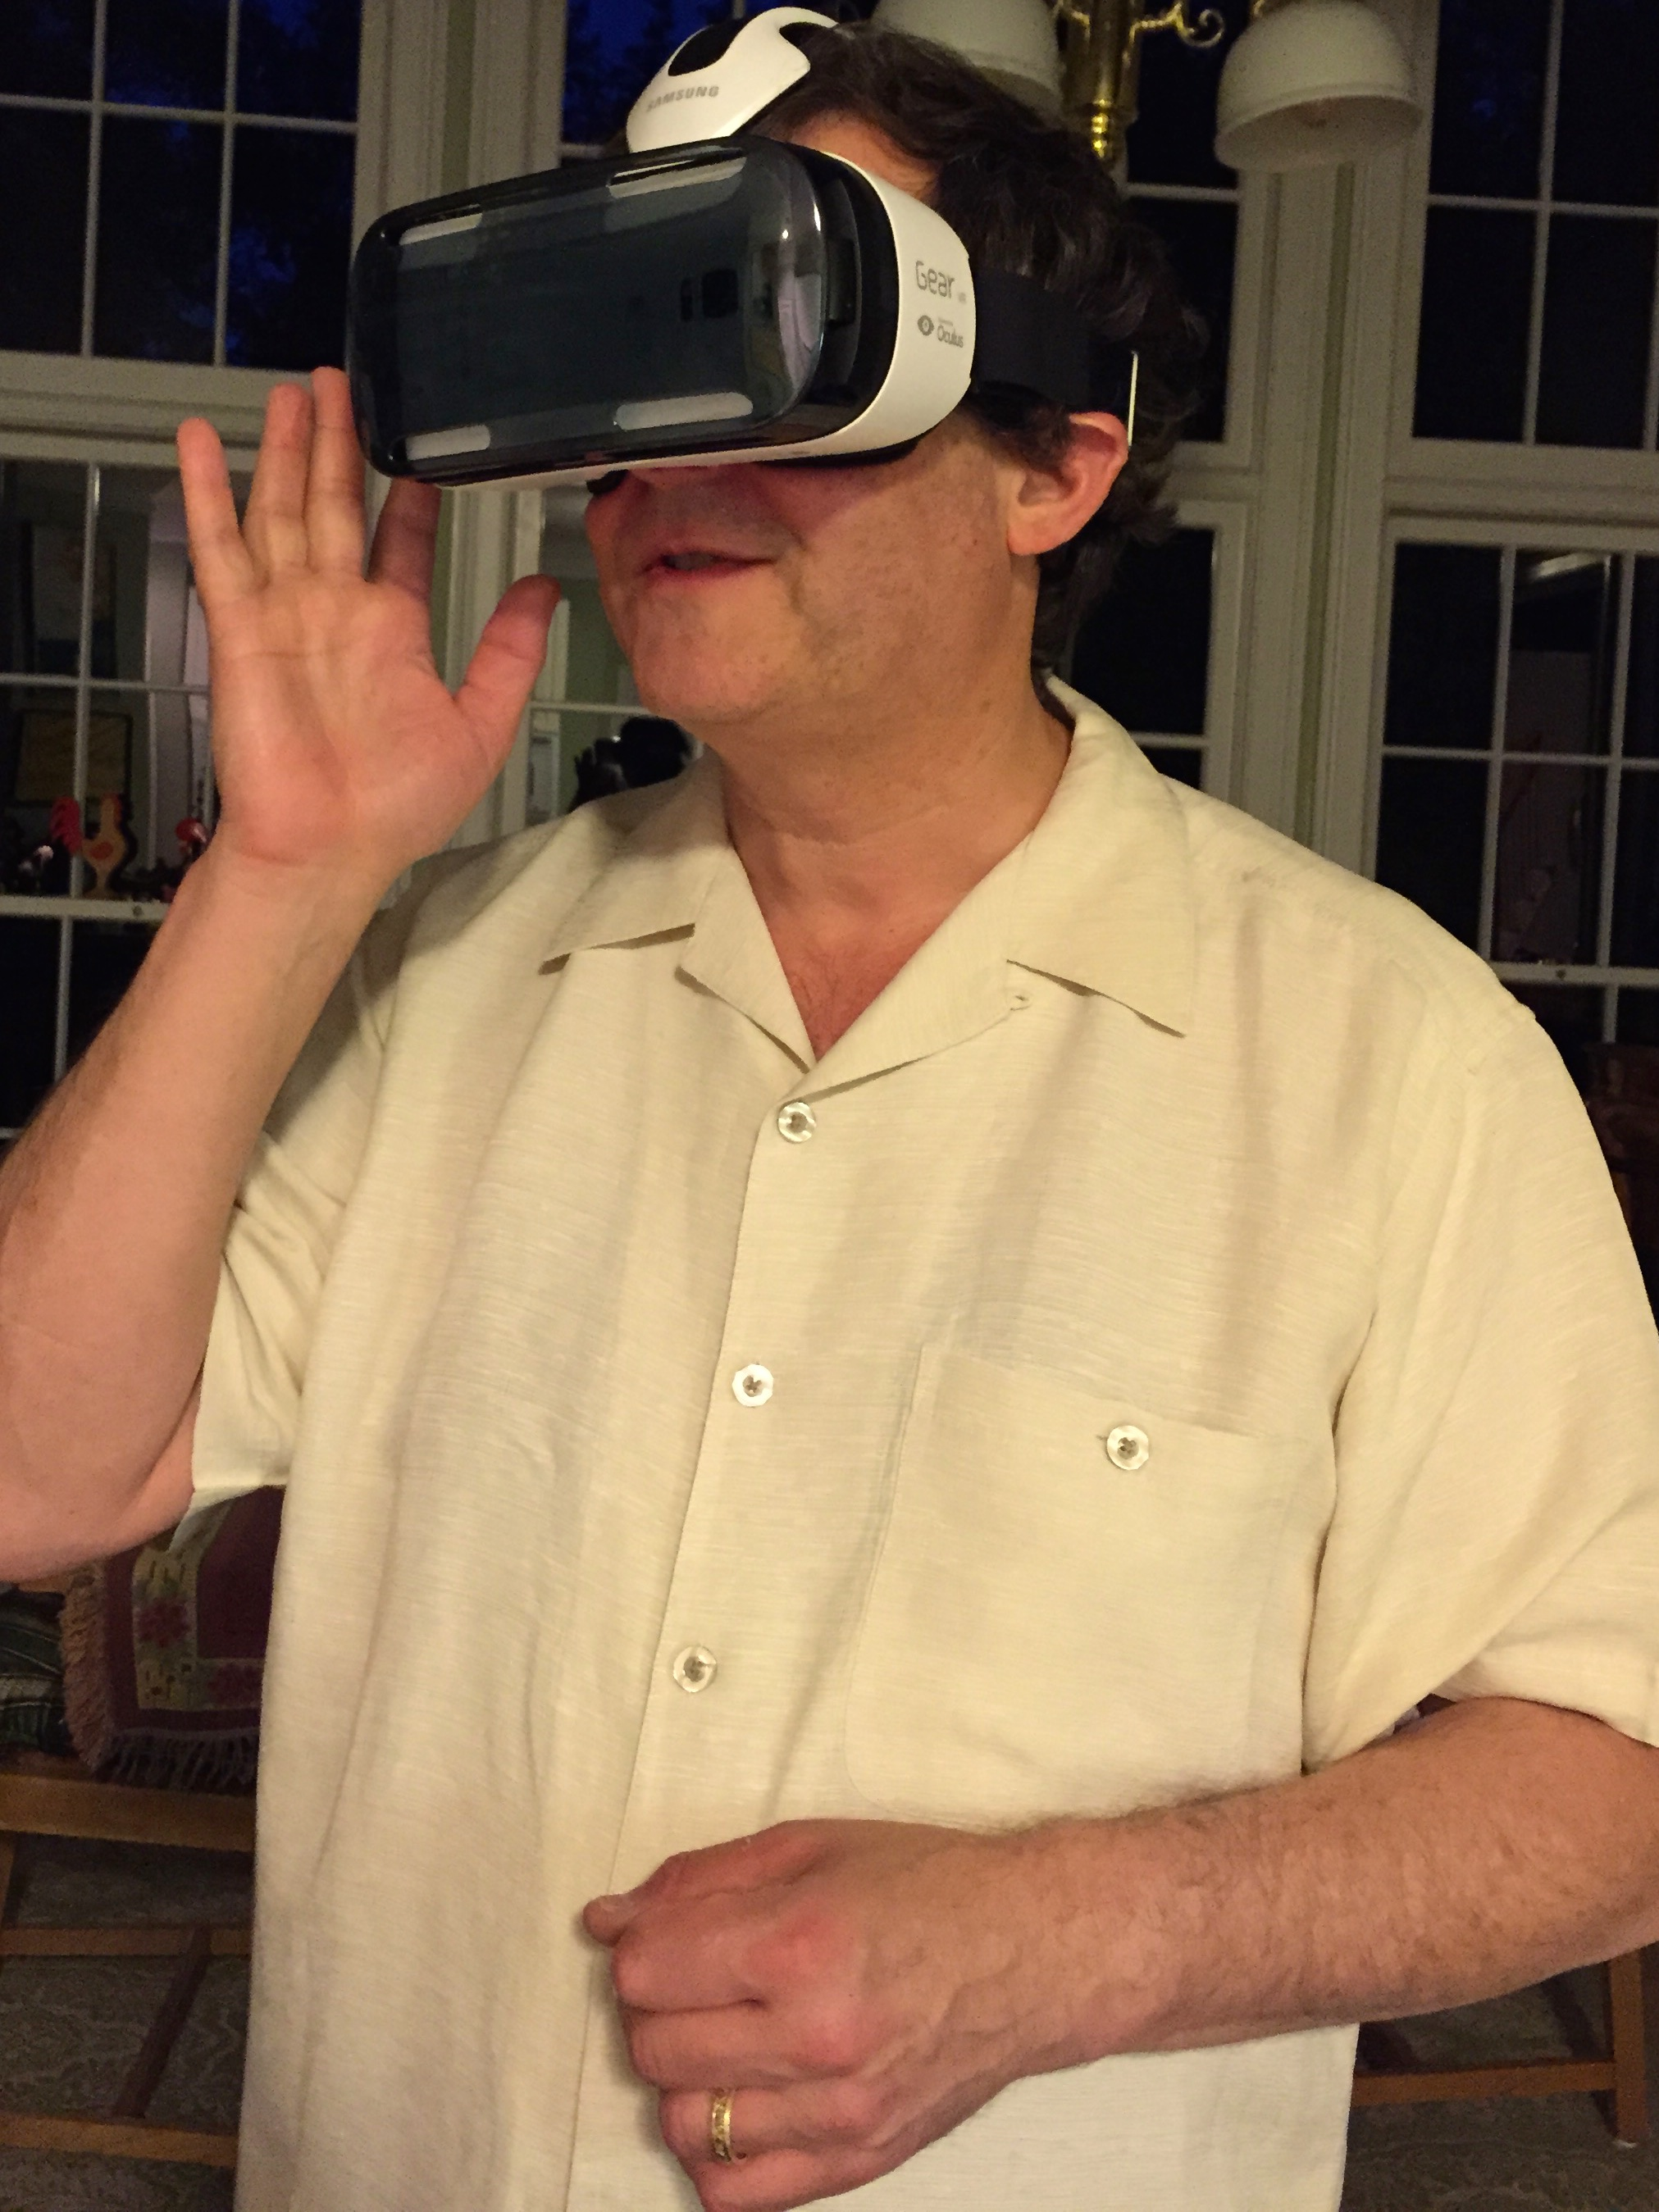 We Get Around Chief Photographer Dan Smigrod experiencing Samsung Gear VR + Samsung Galaxy Note 4 with Matterport VR Showcase Beta